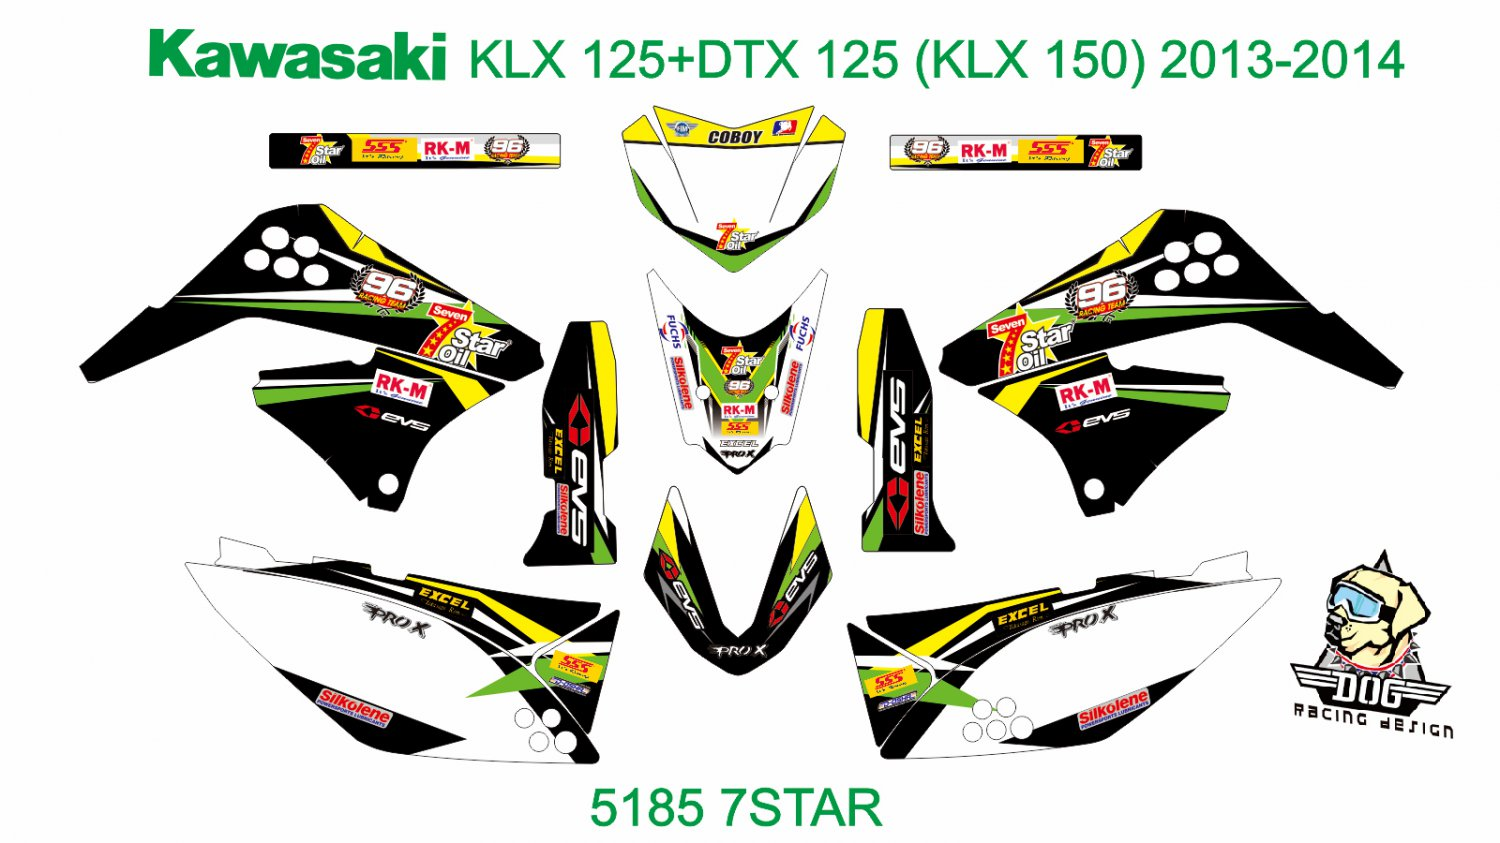 KAWASAKI KLX 125+DTX 125 (KLX 150) 2013-2014 GRAPHIC DECAL KIT CODE.5185